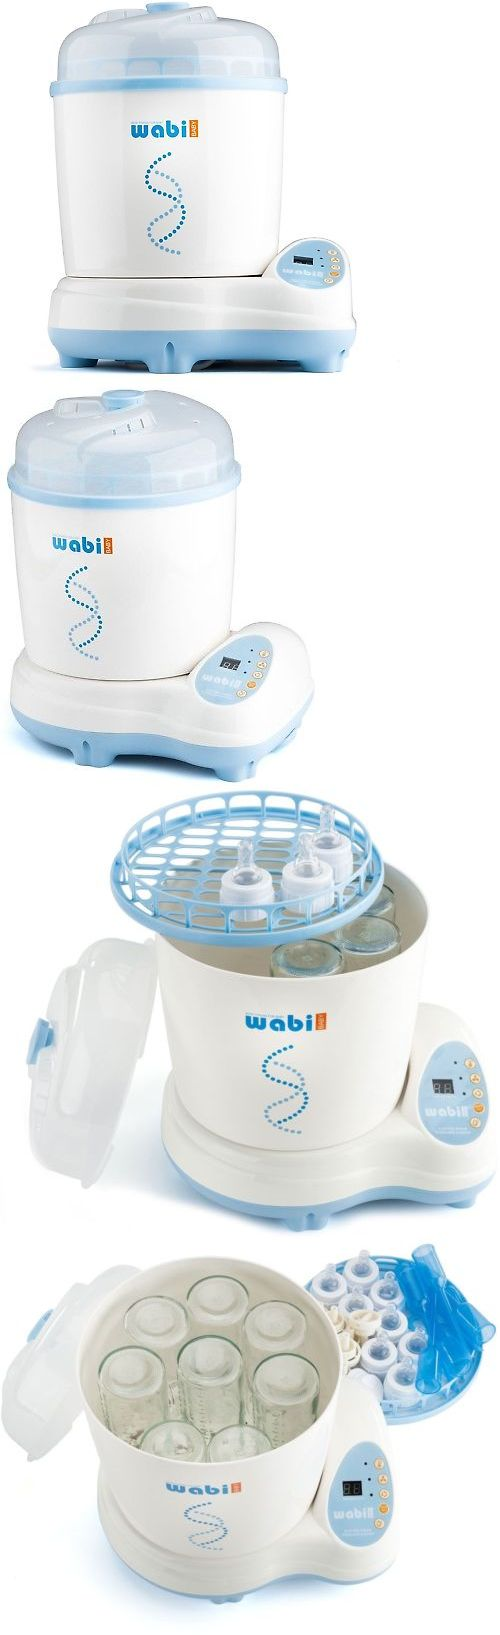 Bottle Sterilizers 106789: Wabi Bpa Free Baby Electric 3-In-1 Baby Bottle Steam Sterilizer And Dryer -> BUY IT NOW ONLY: $142.95 on eBay!